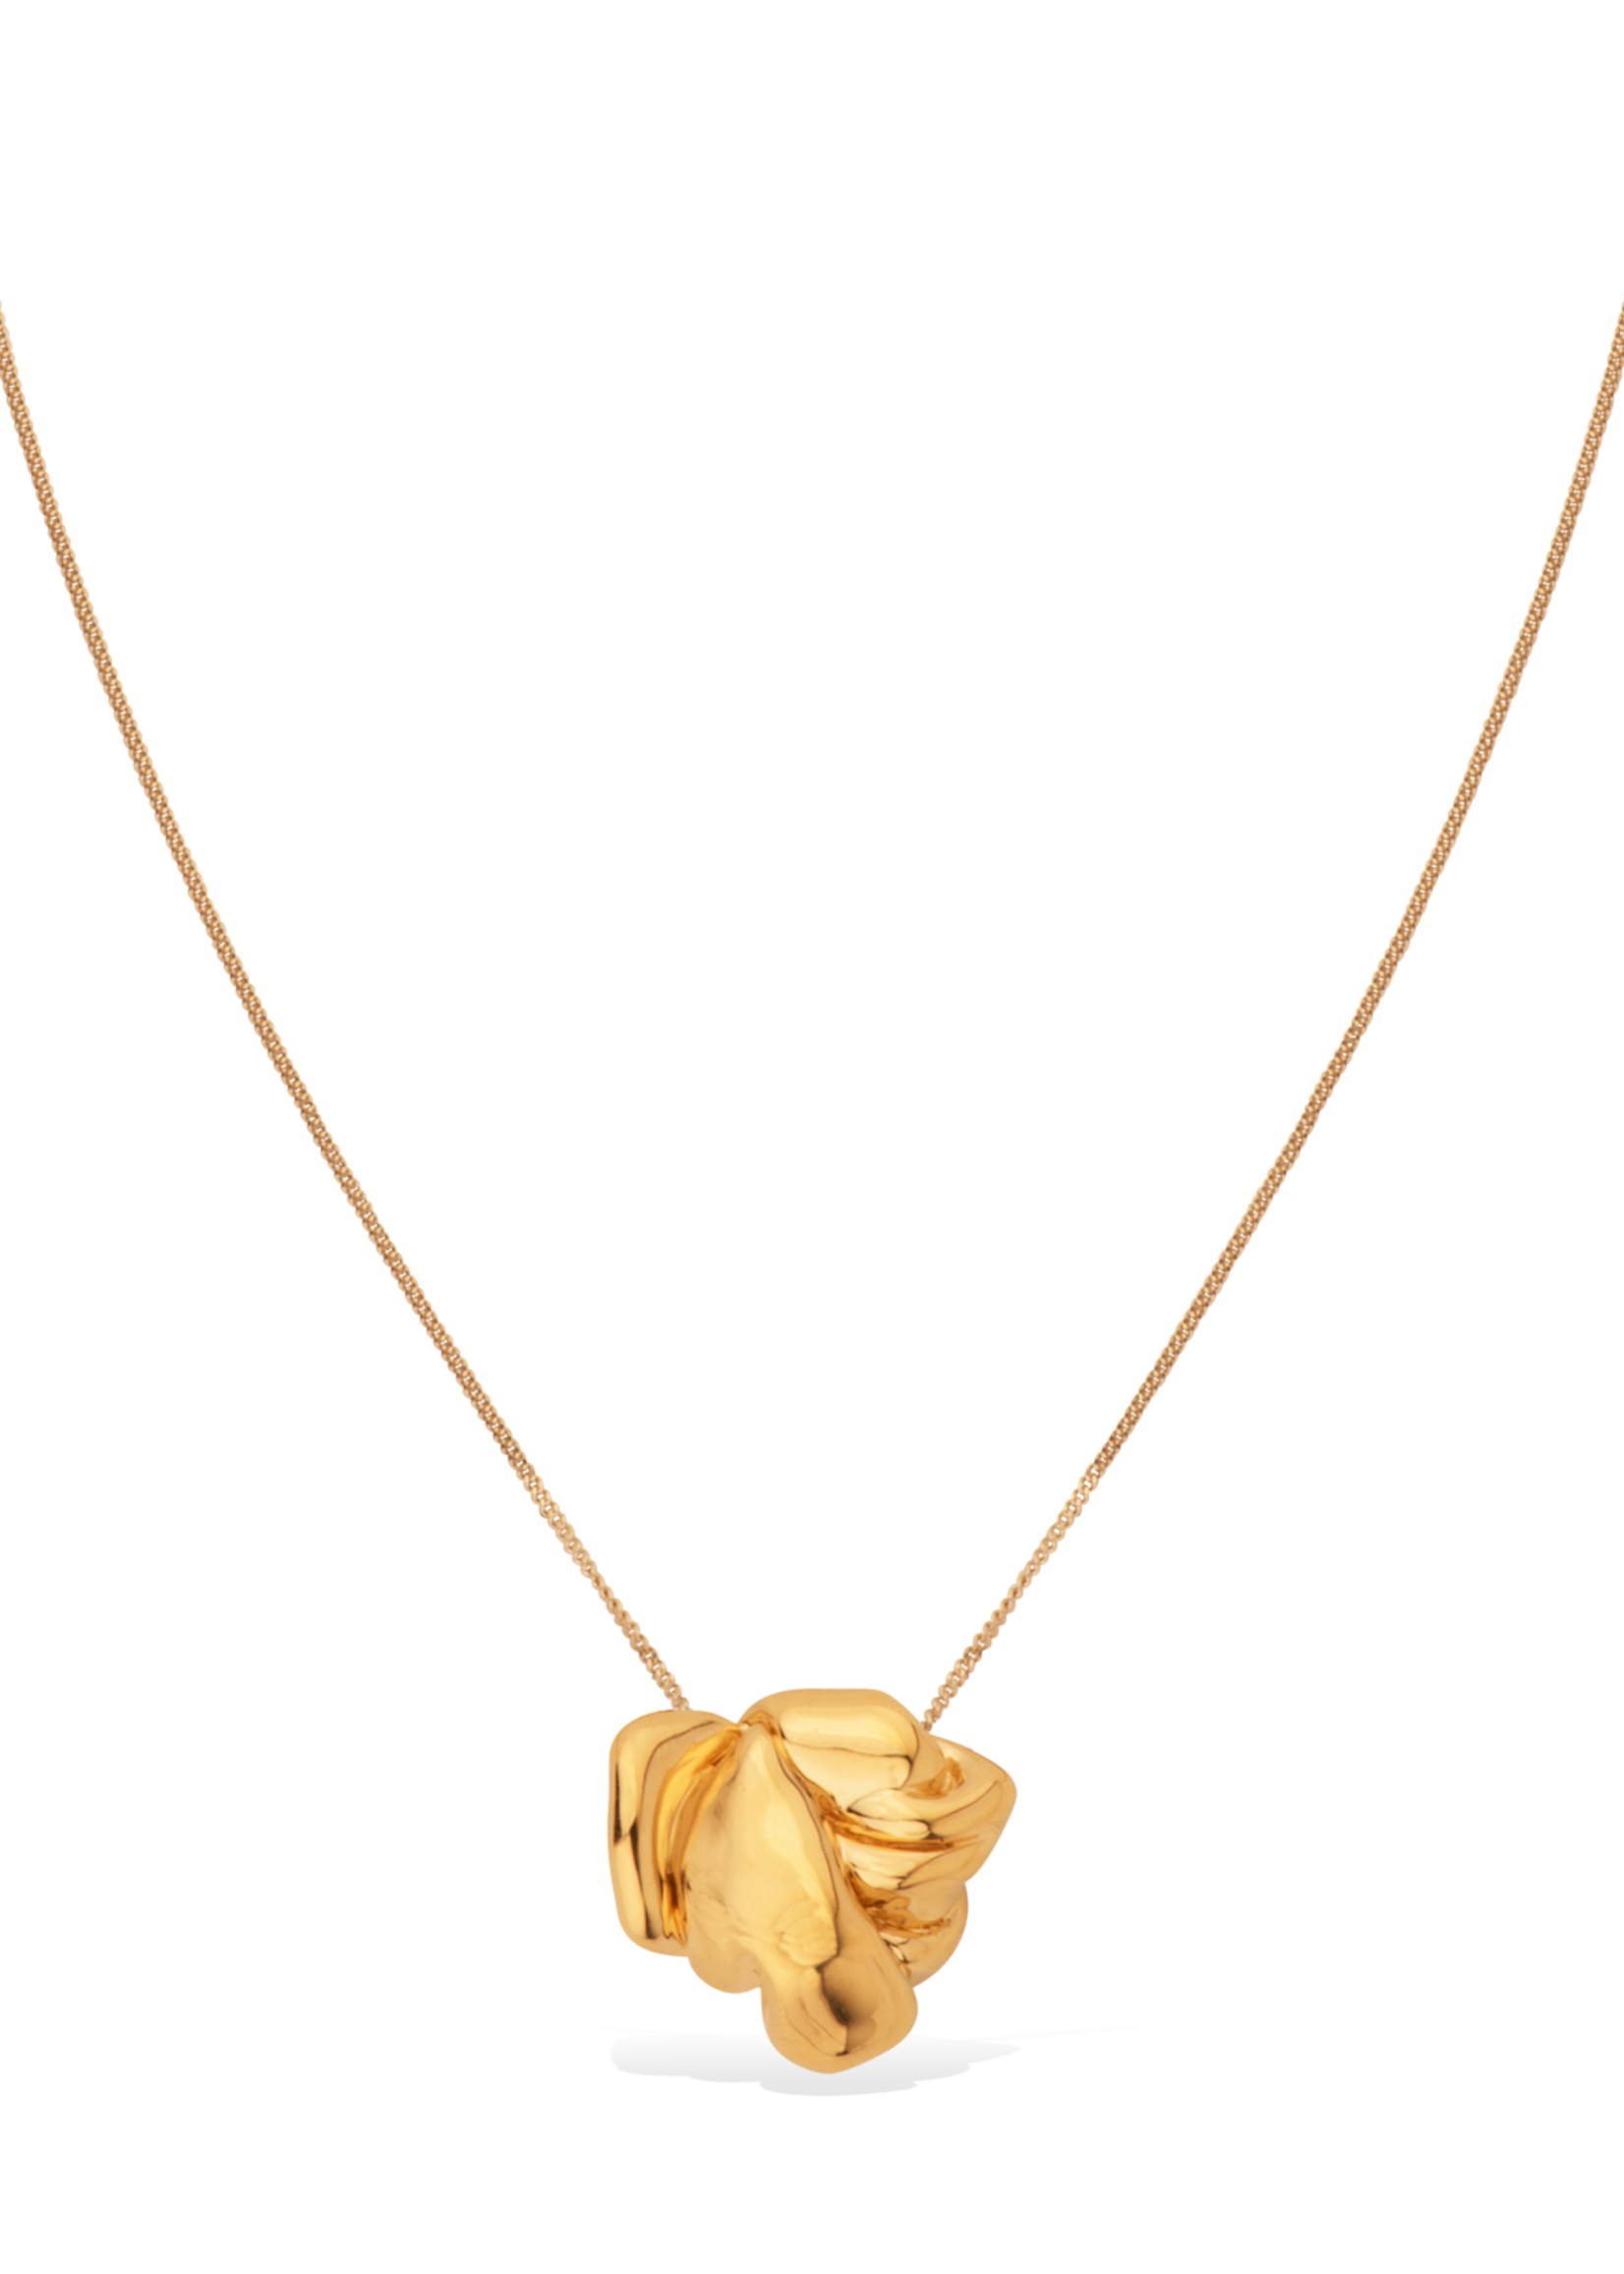 Completed Works Completed Works Origins of European Tragic Drama Gold Vermeil Necklace